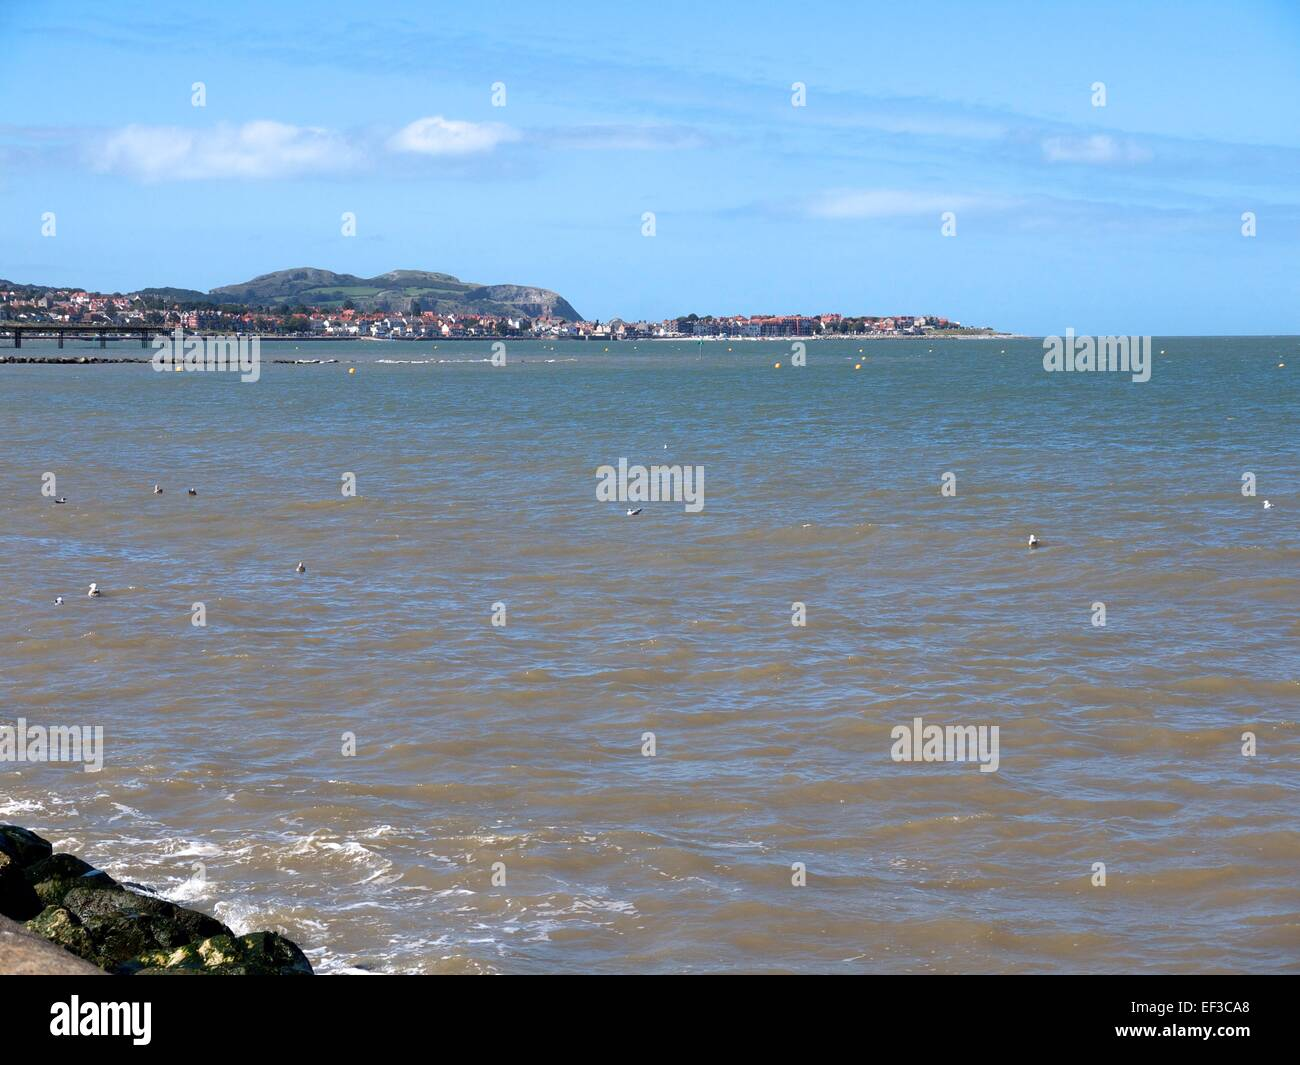 Rhos on Sea in the distance and the sea in the foreground - Stock Image